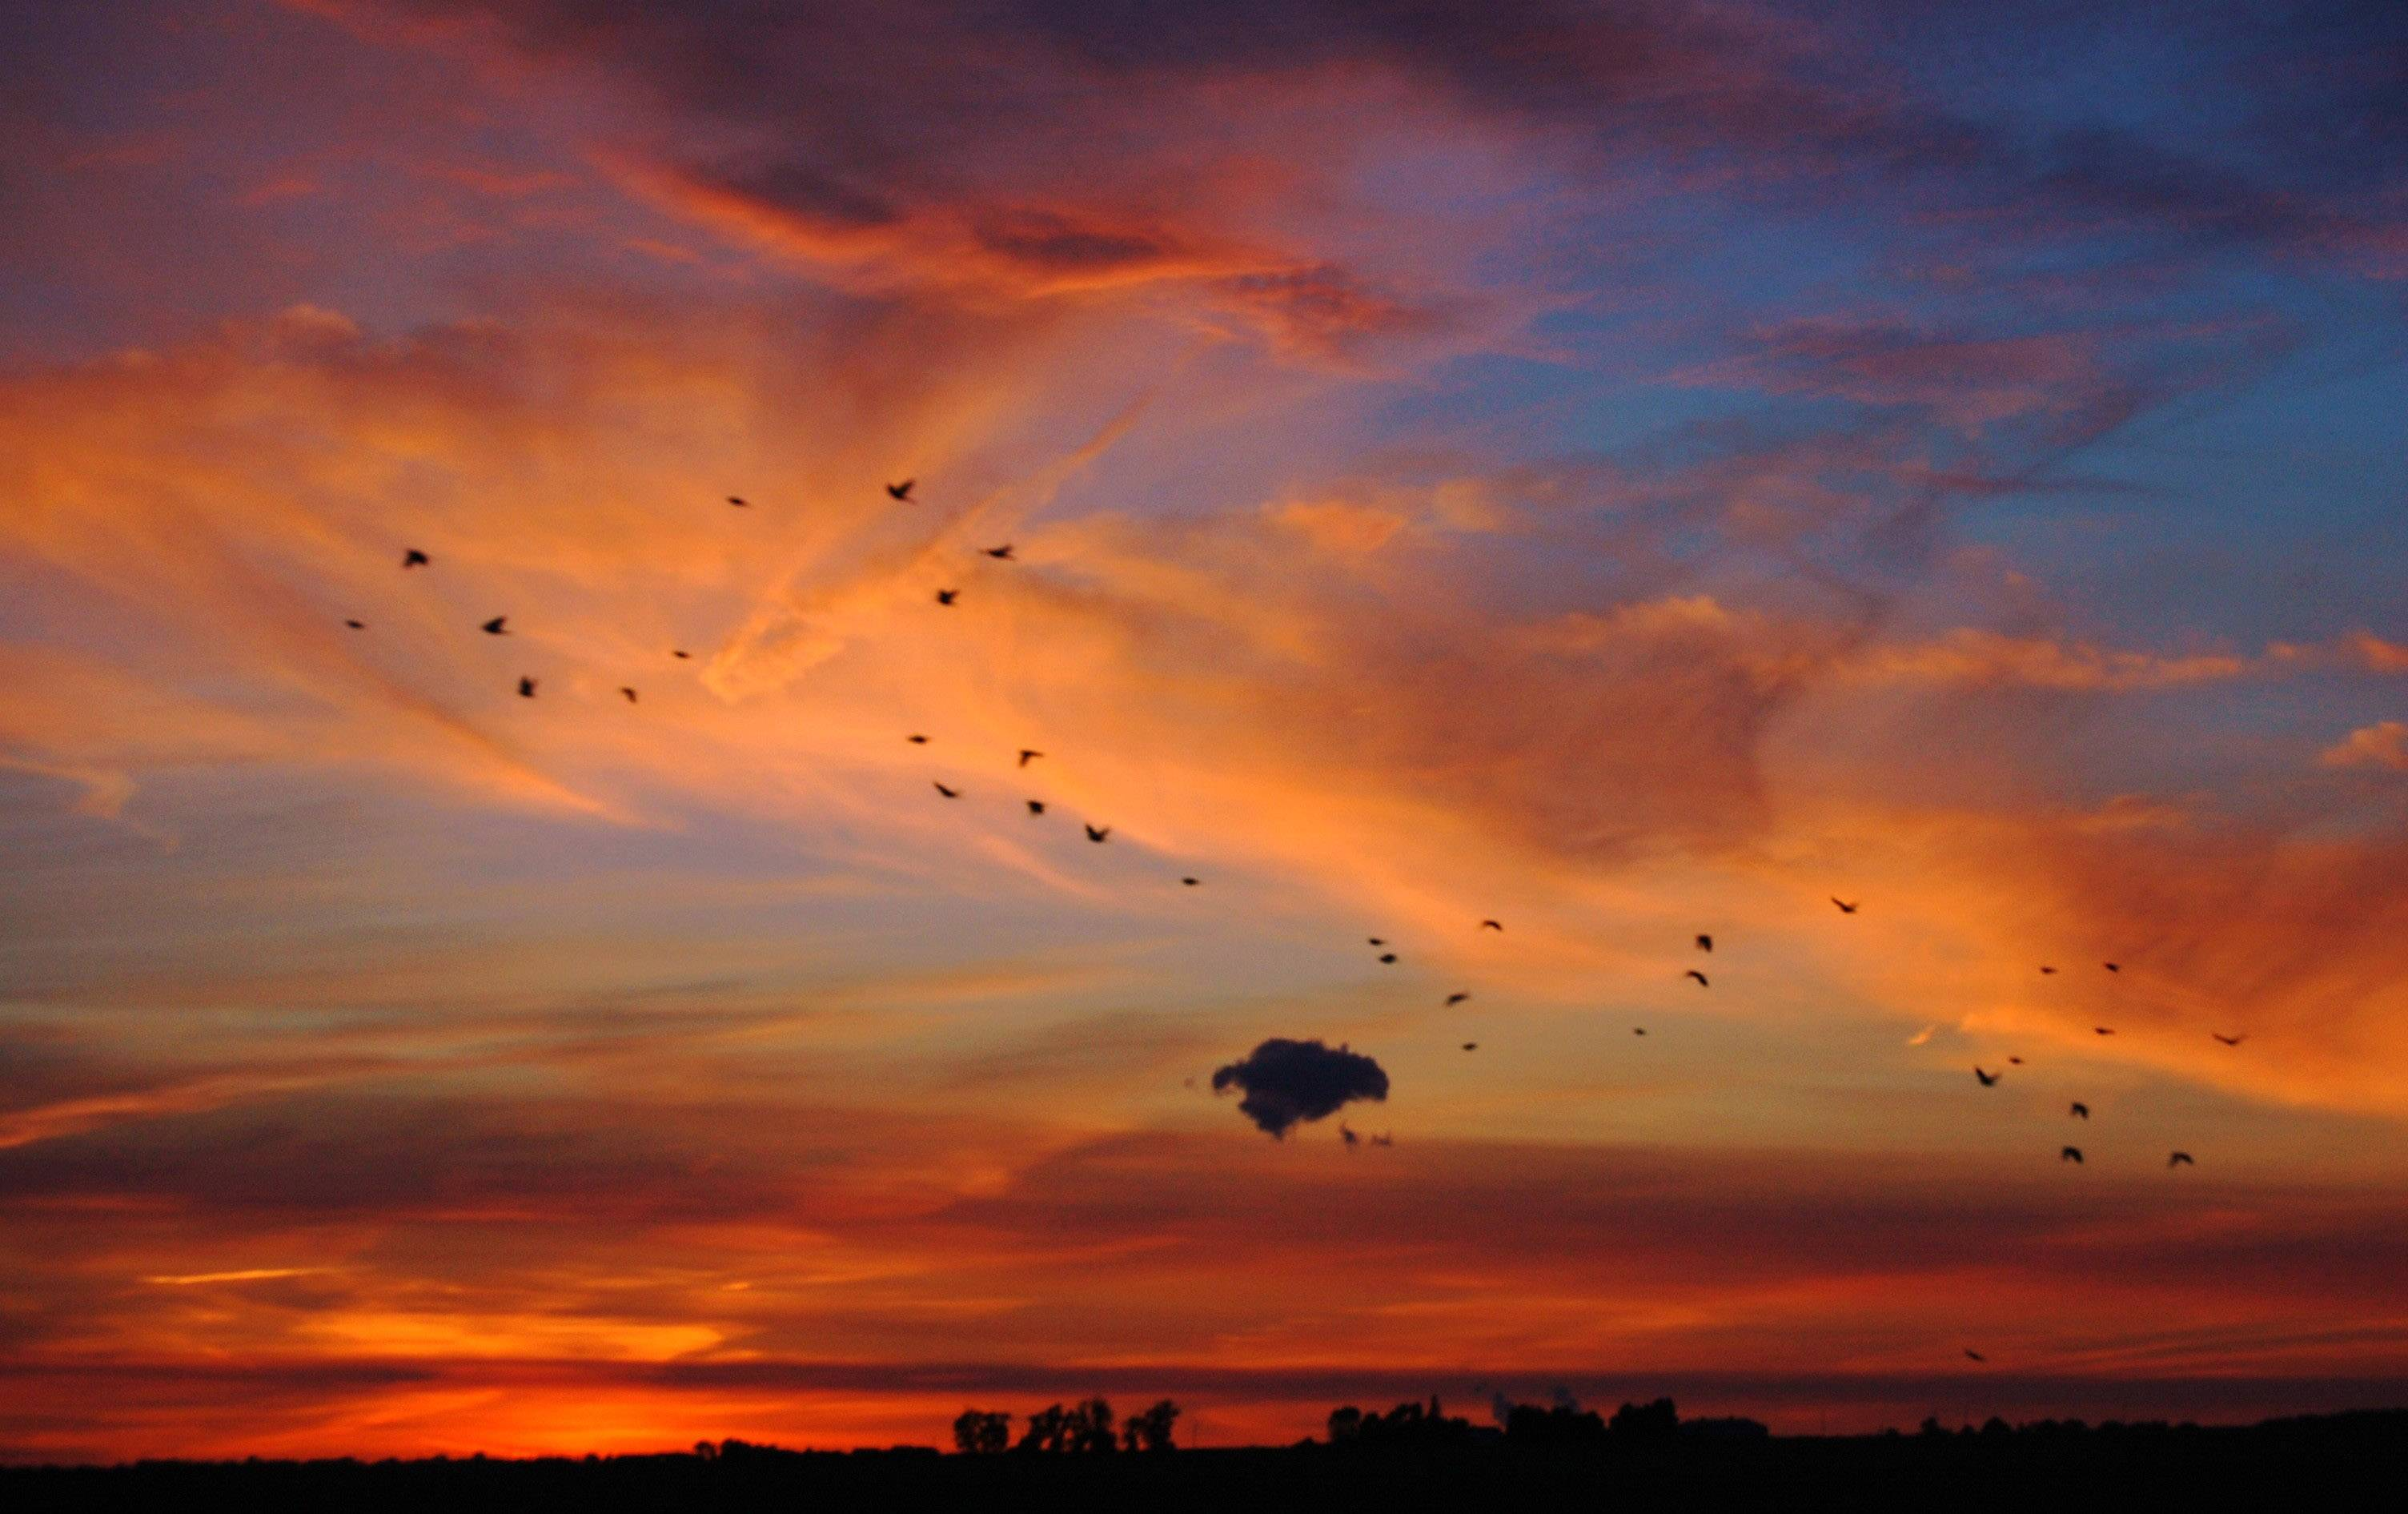 The sunsets in bold colors when all of a sudden a flock of birds flew by near Highway 88W in Dixon, Illinois on August 15.